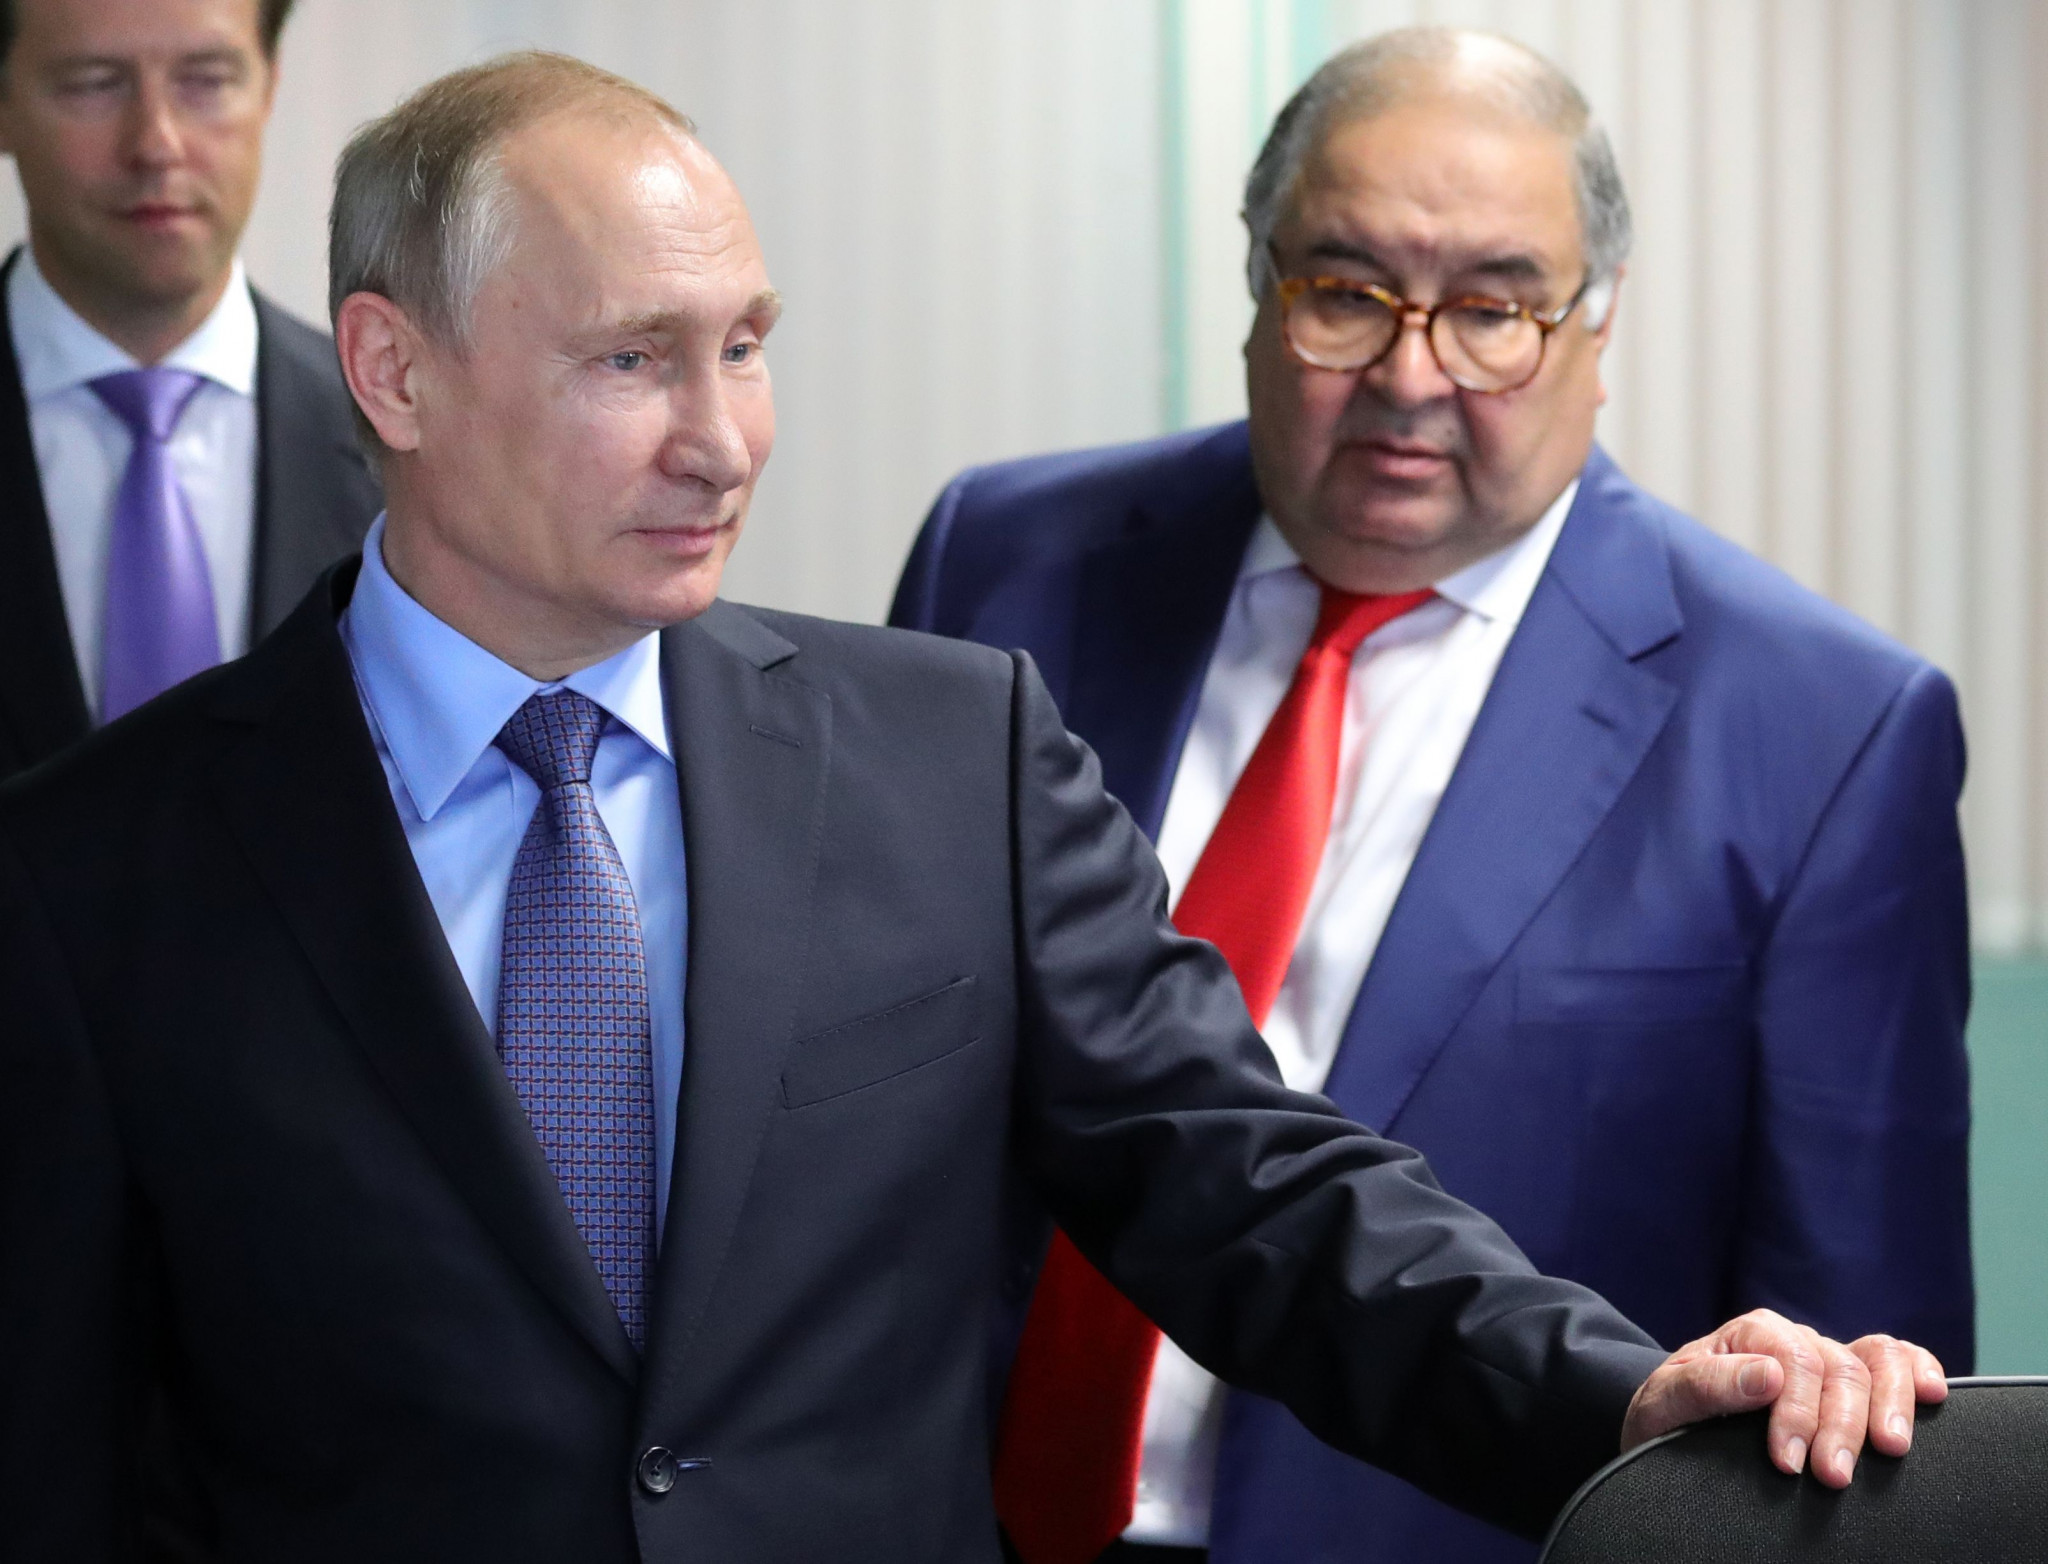 Fencing chief Alisher Usmanov, right, pictured with Russian President Vladimir Putin ©Getty Images